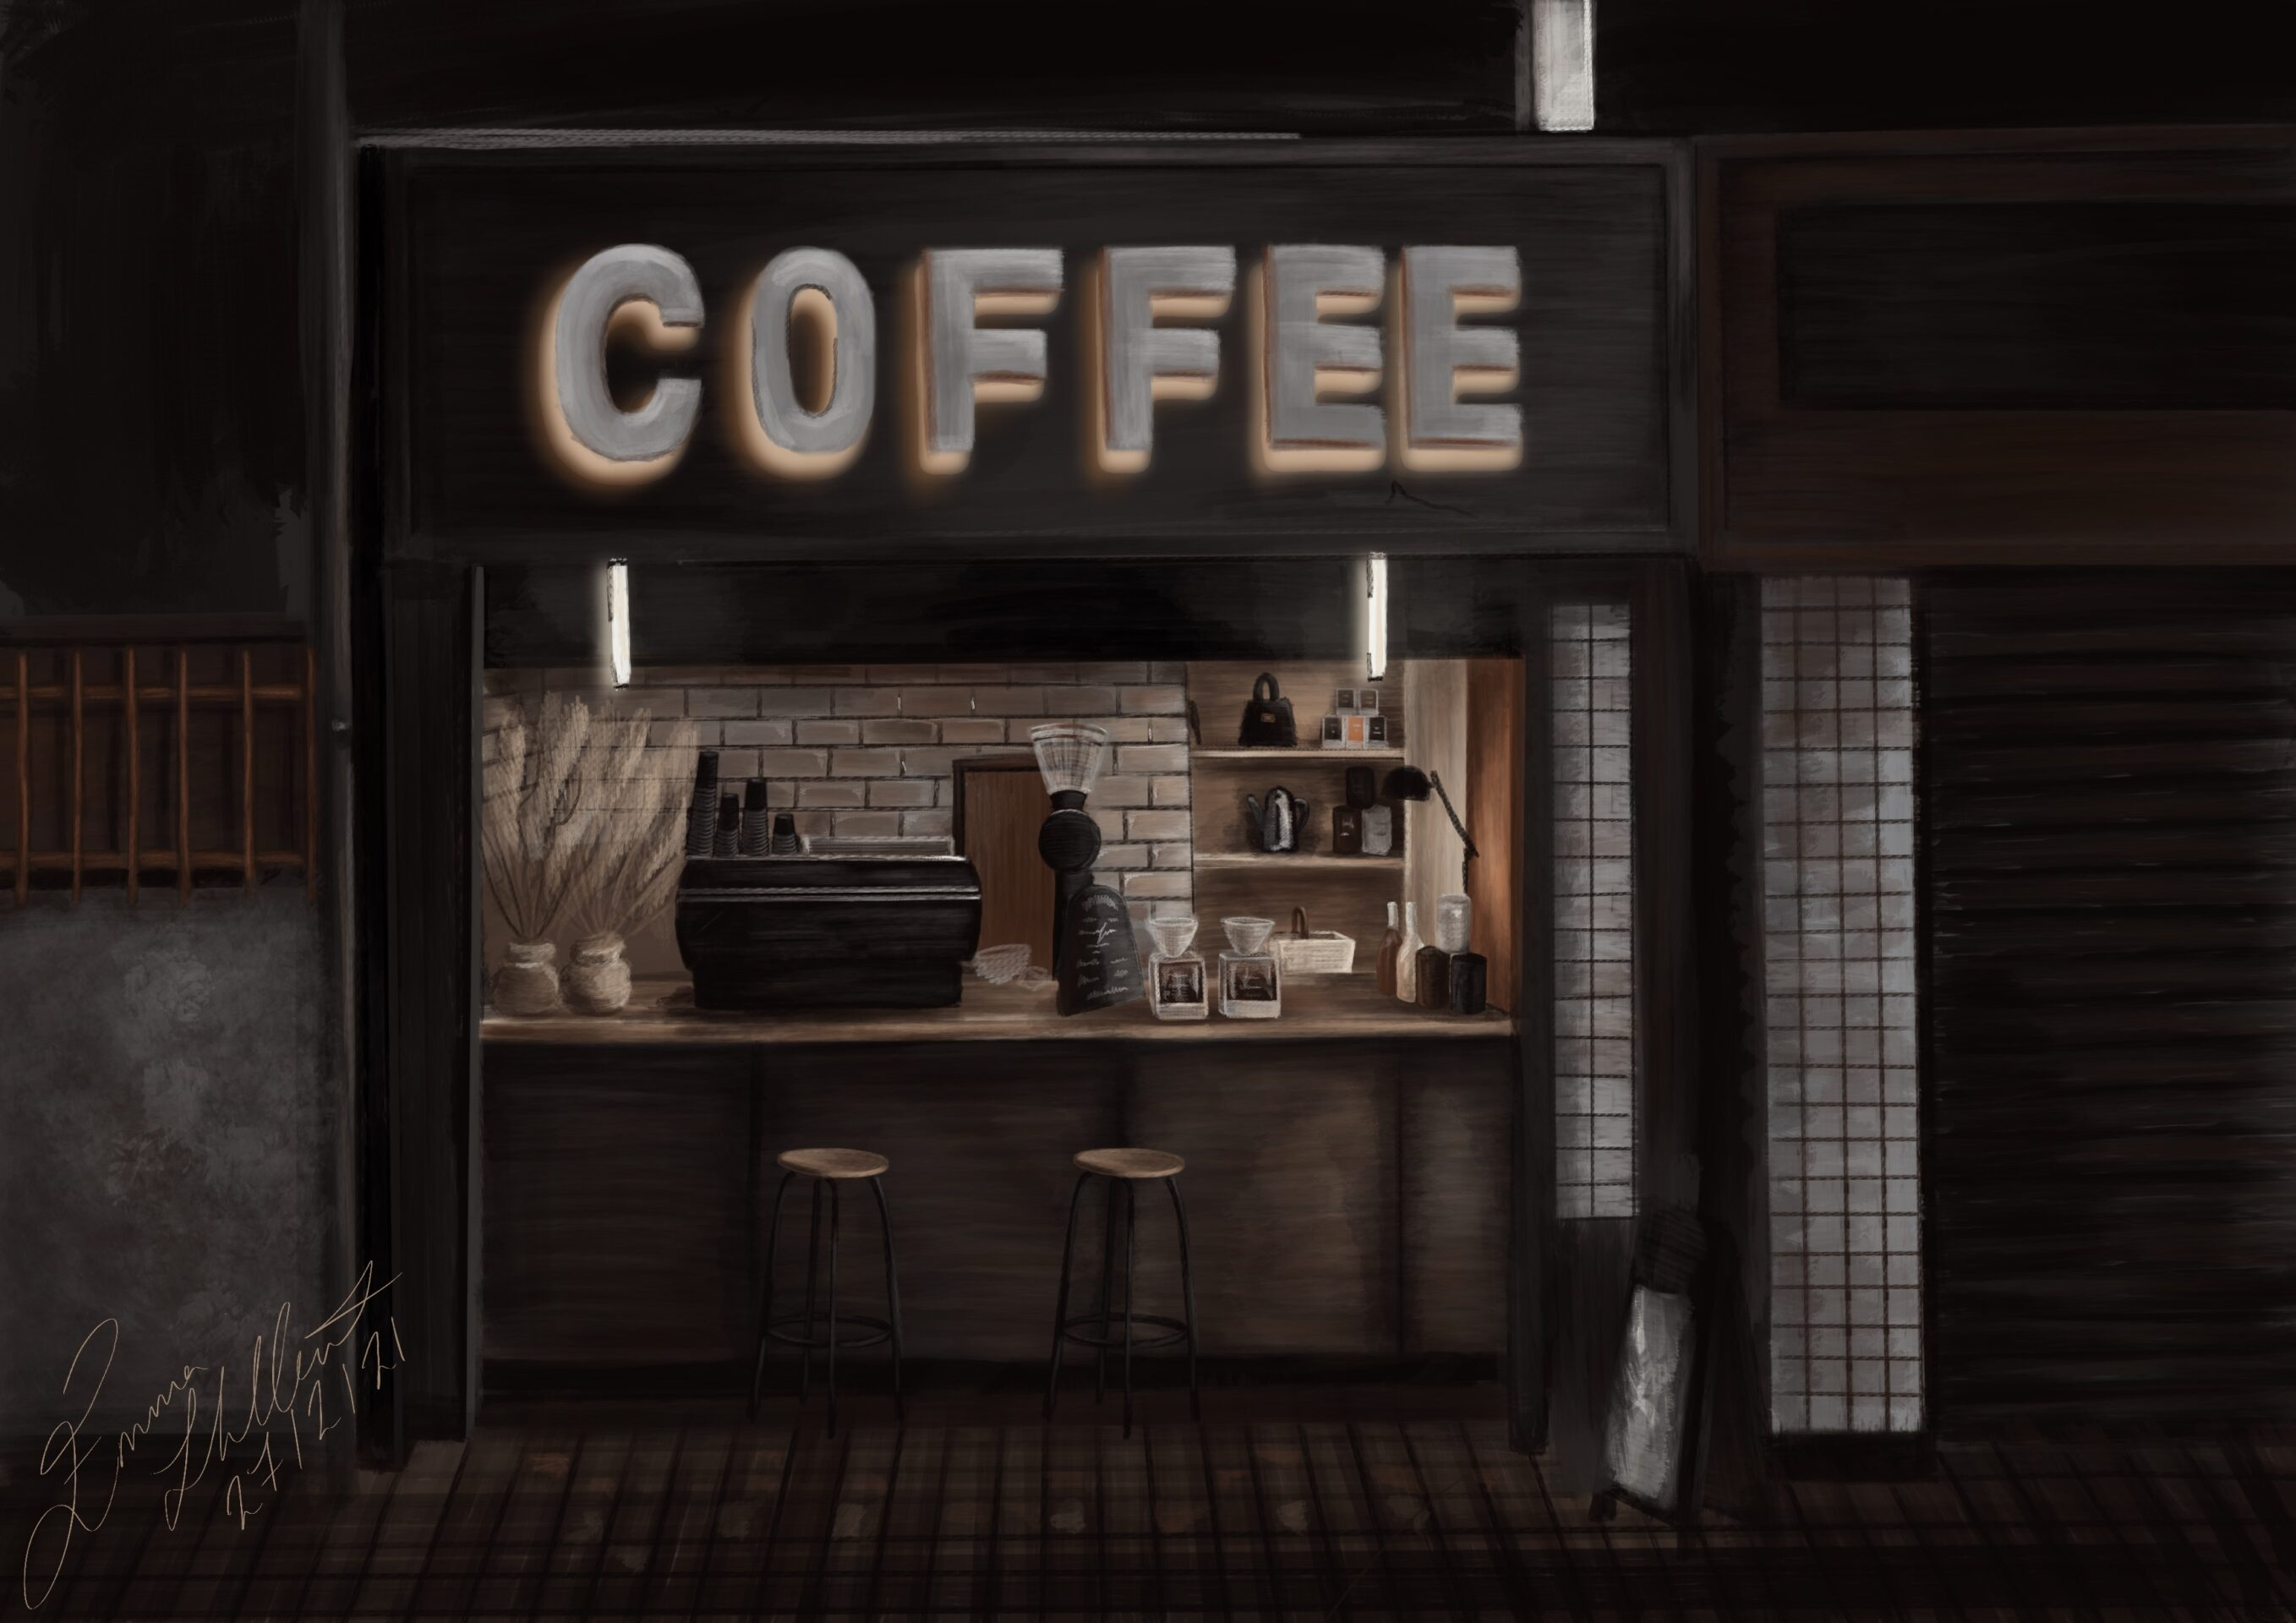 Emma's painting is quite dark, with everything being different shades of brown, black and white. The painting is of a coffee shop, with a large, white sign saying 'COFFEE' above the entrance. Inside the shop, there is the bar where two stools sit. On the bar is a coffee machine and multiple jars. Behind the bar is a shelf of more jars, a wooden door and a white-tiled wall.